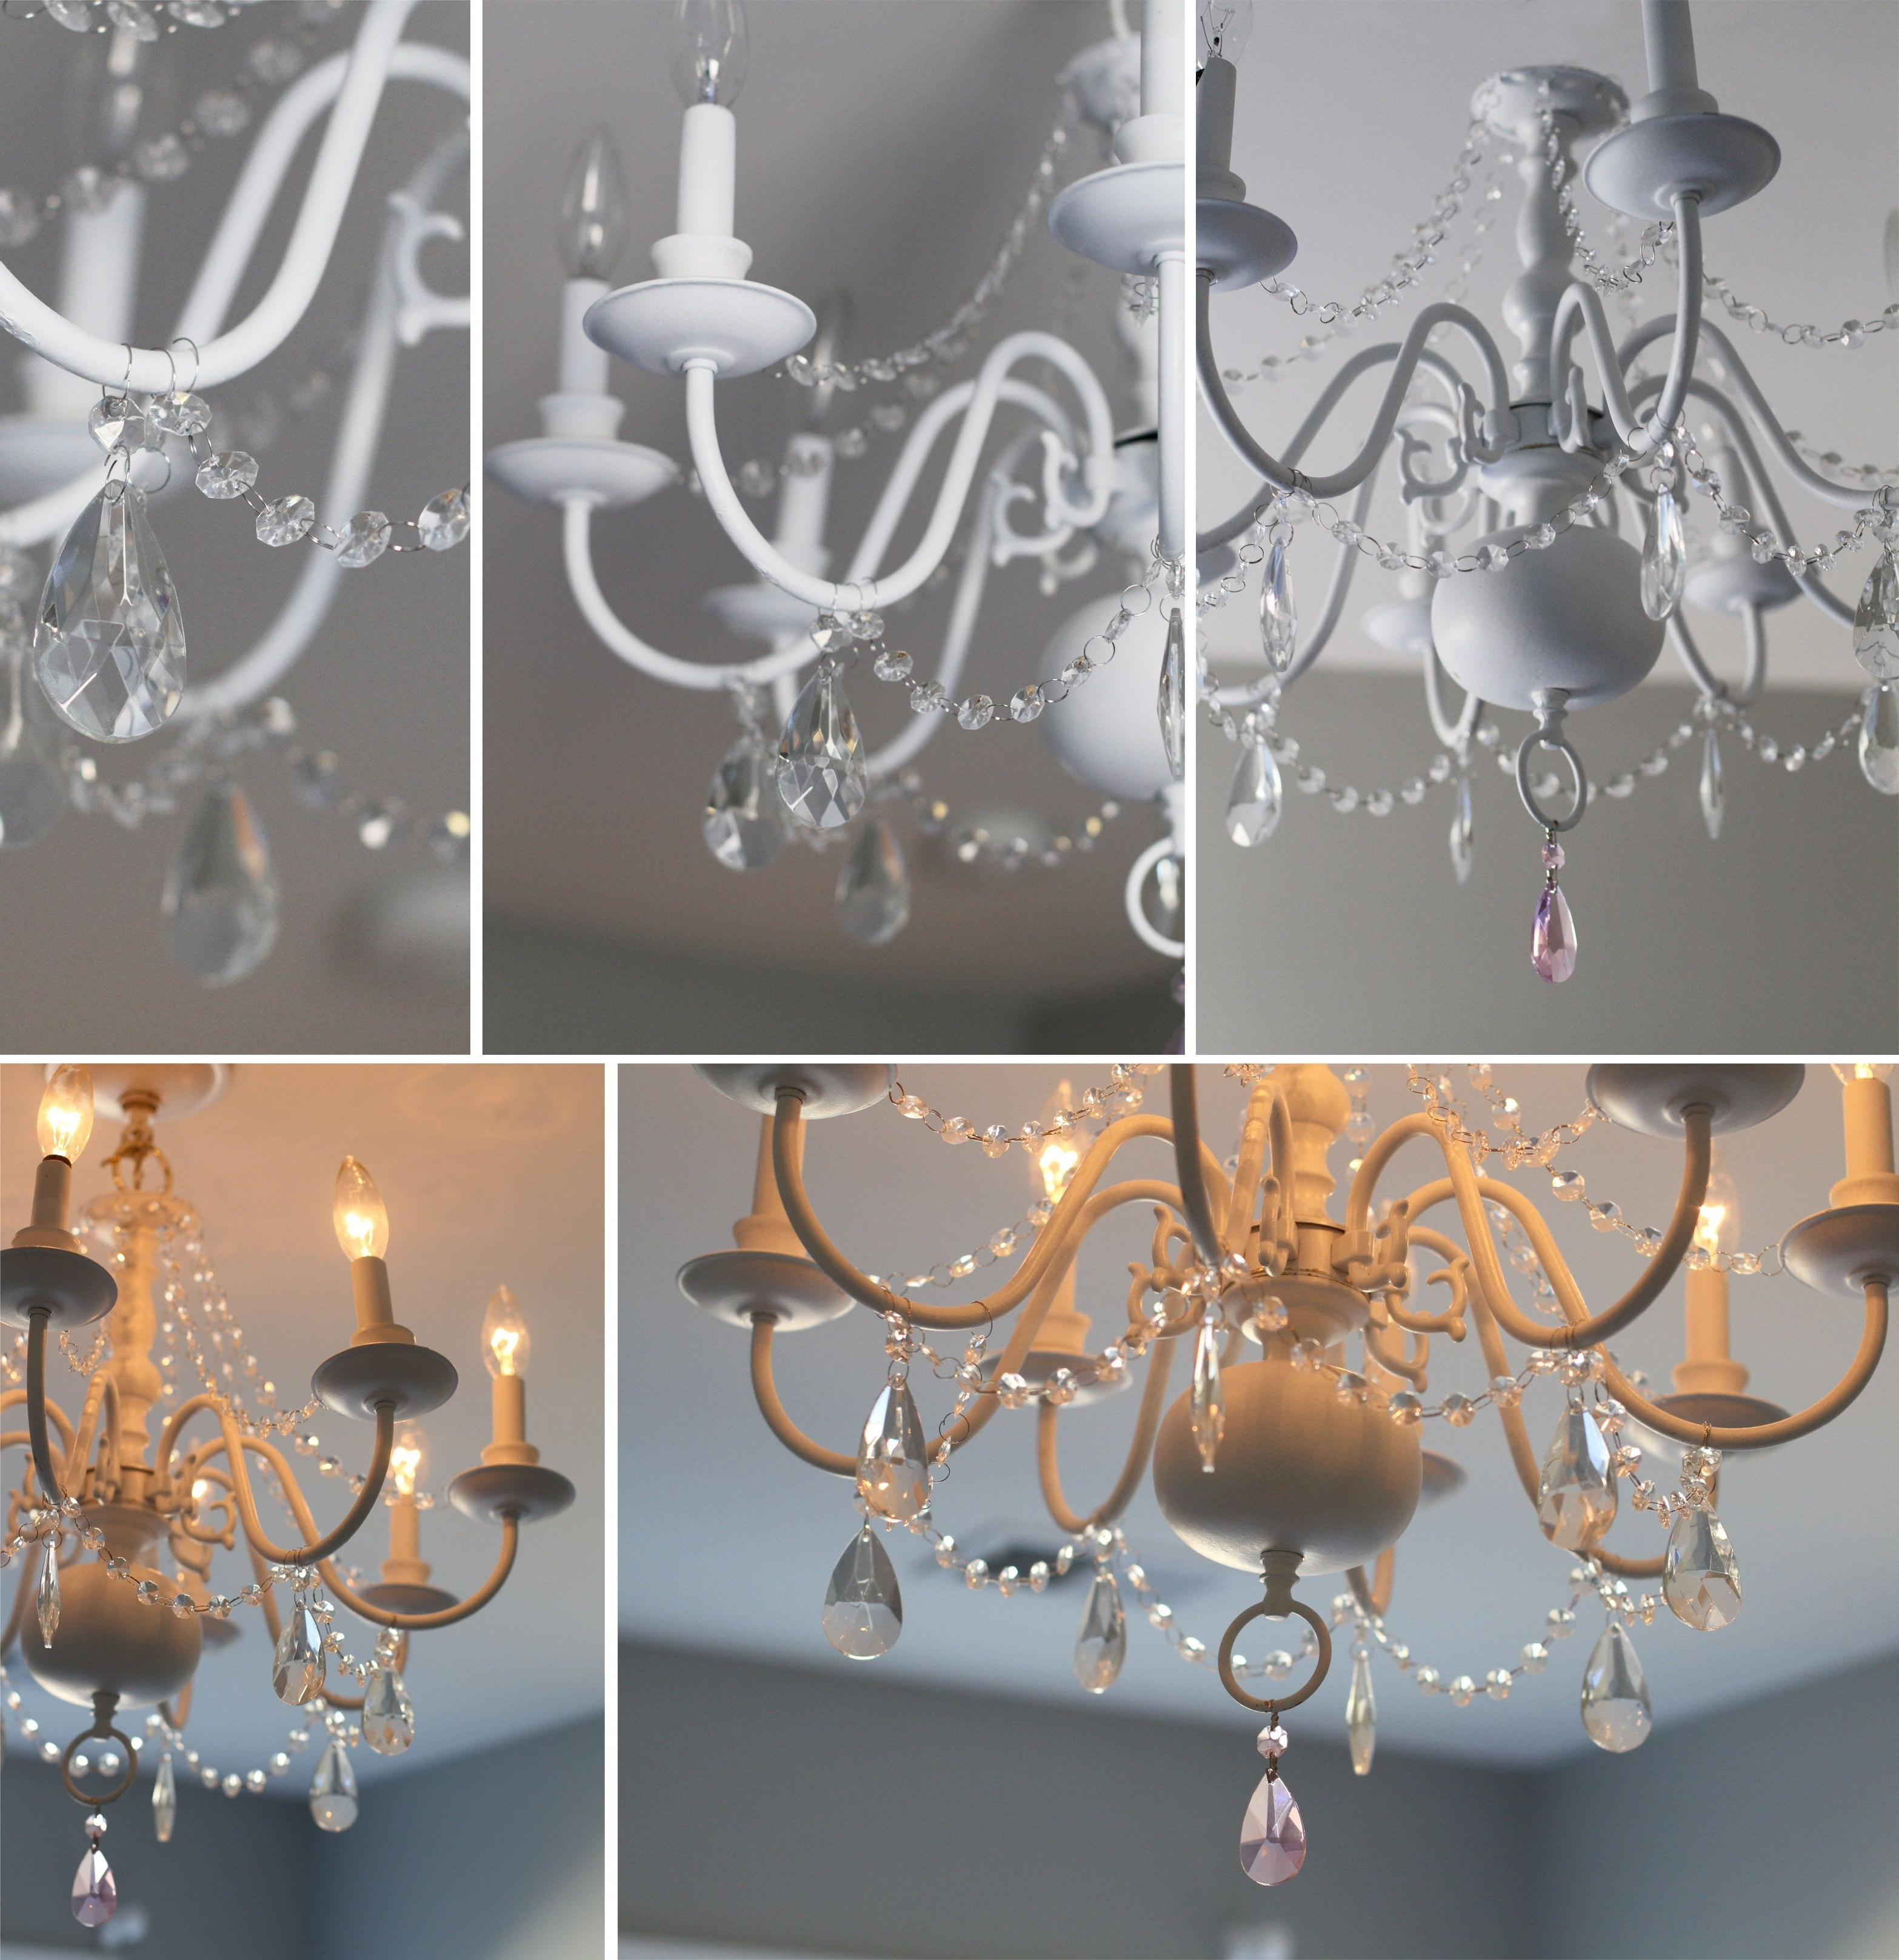 Diy Chandelier Before & After For Little Girl's Room (View 7 of 20)